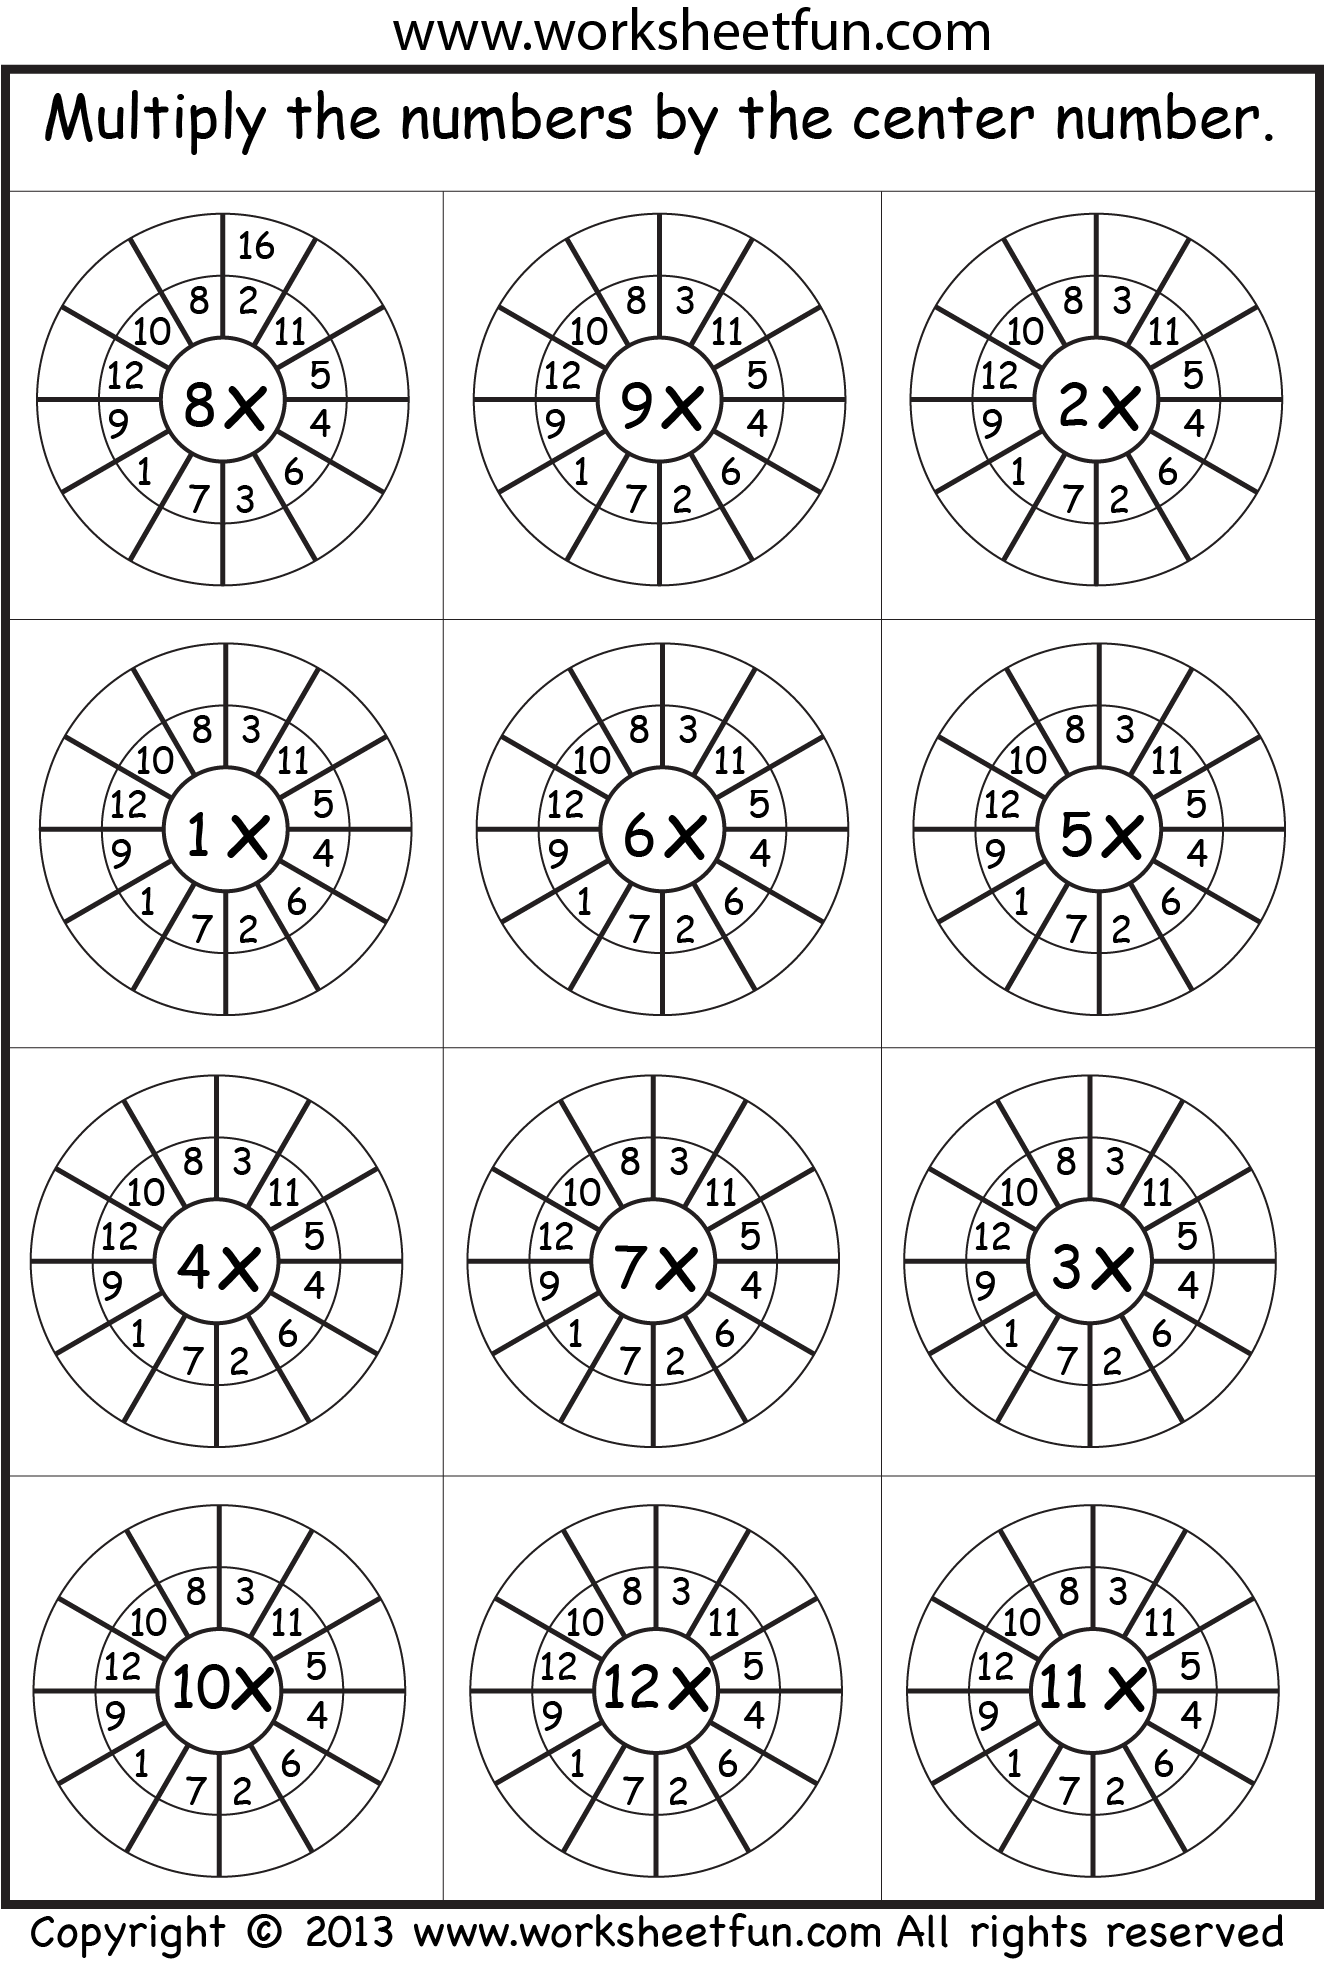 Multiplication Worksheet Helpful For Memory Work With Claritas Classical Academy Cycle 3 Math Http Education Math Times Tables Worksheets Math Multiplication